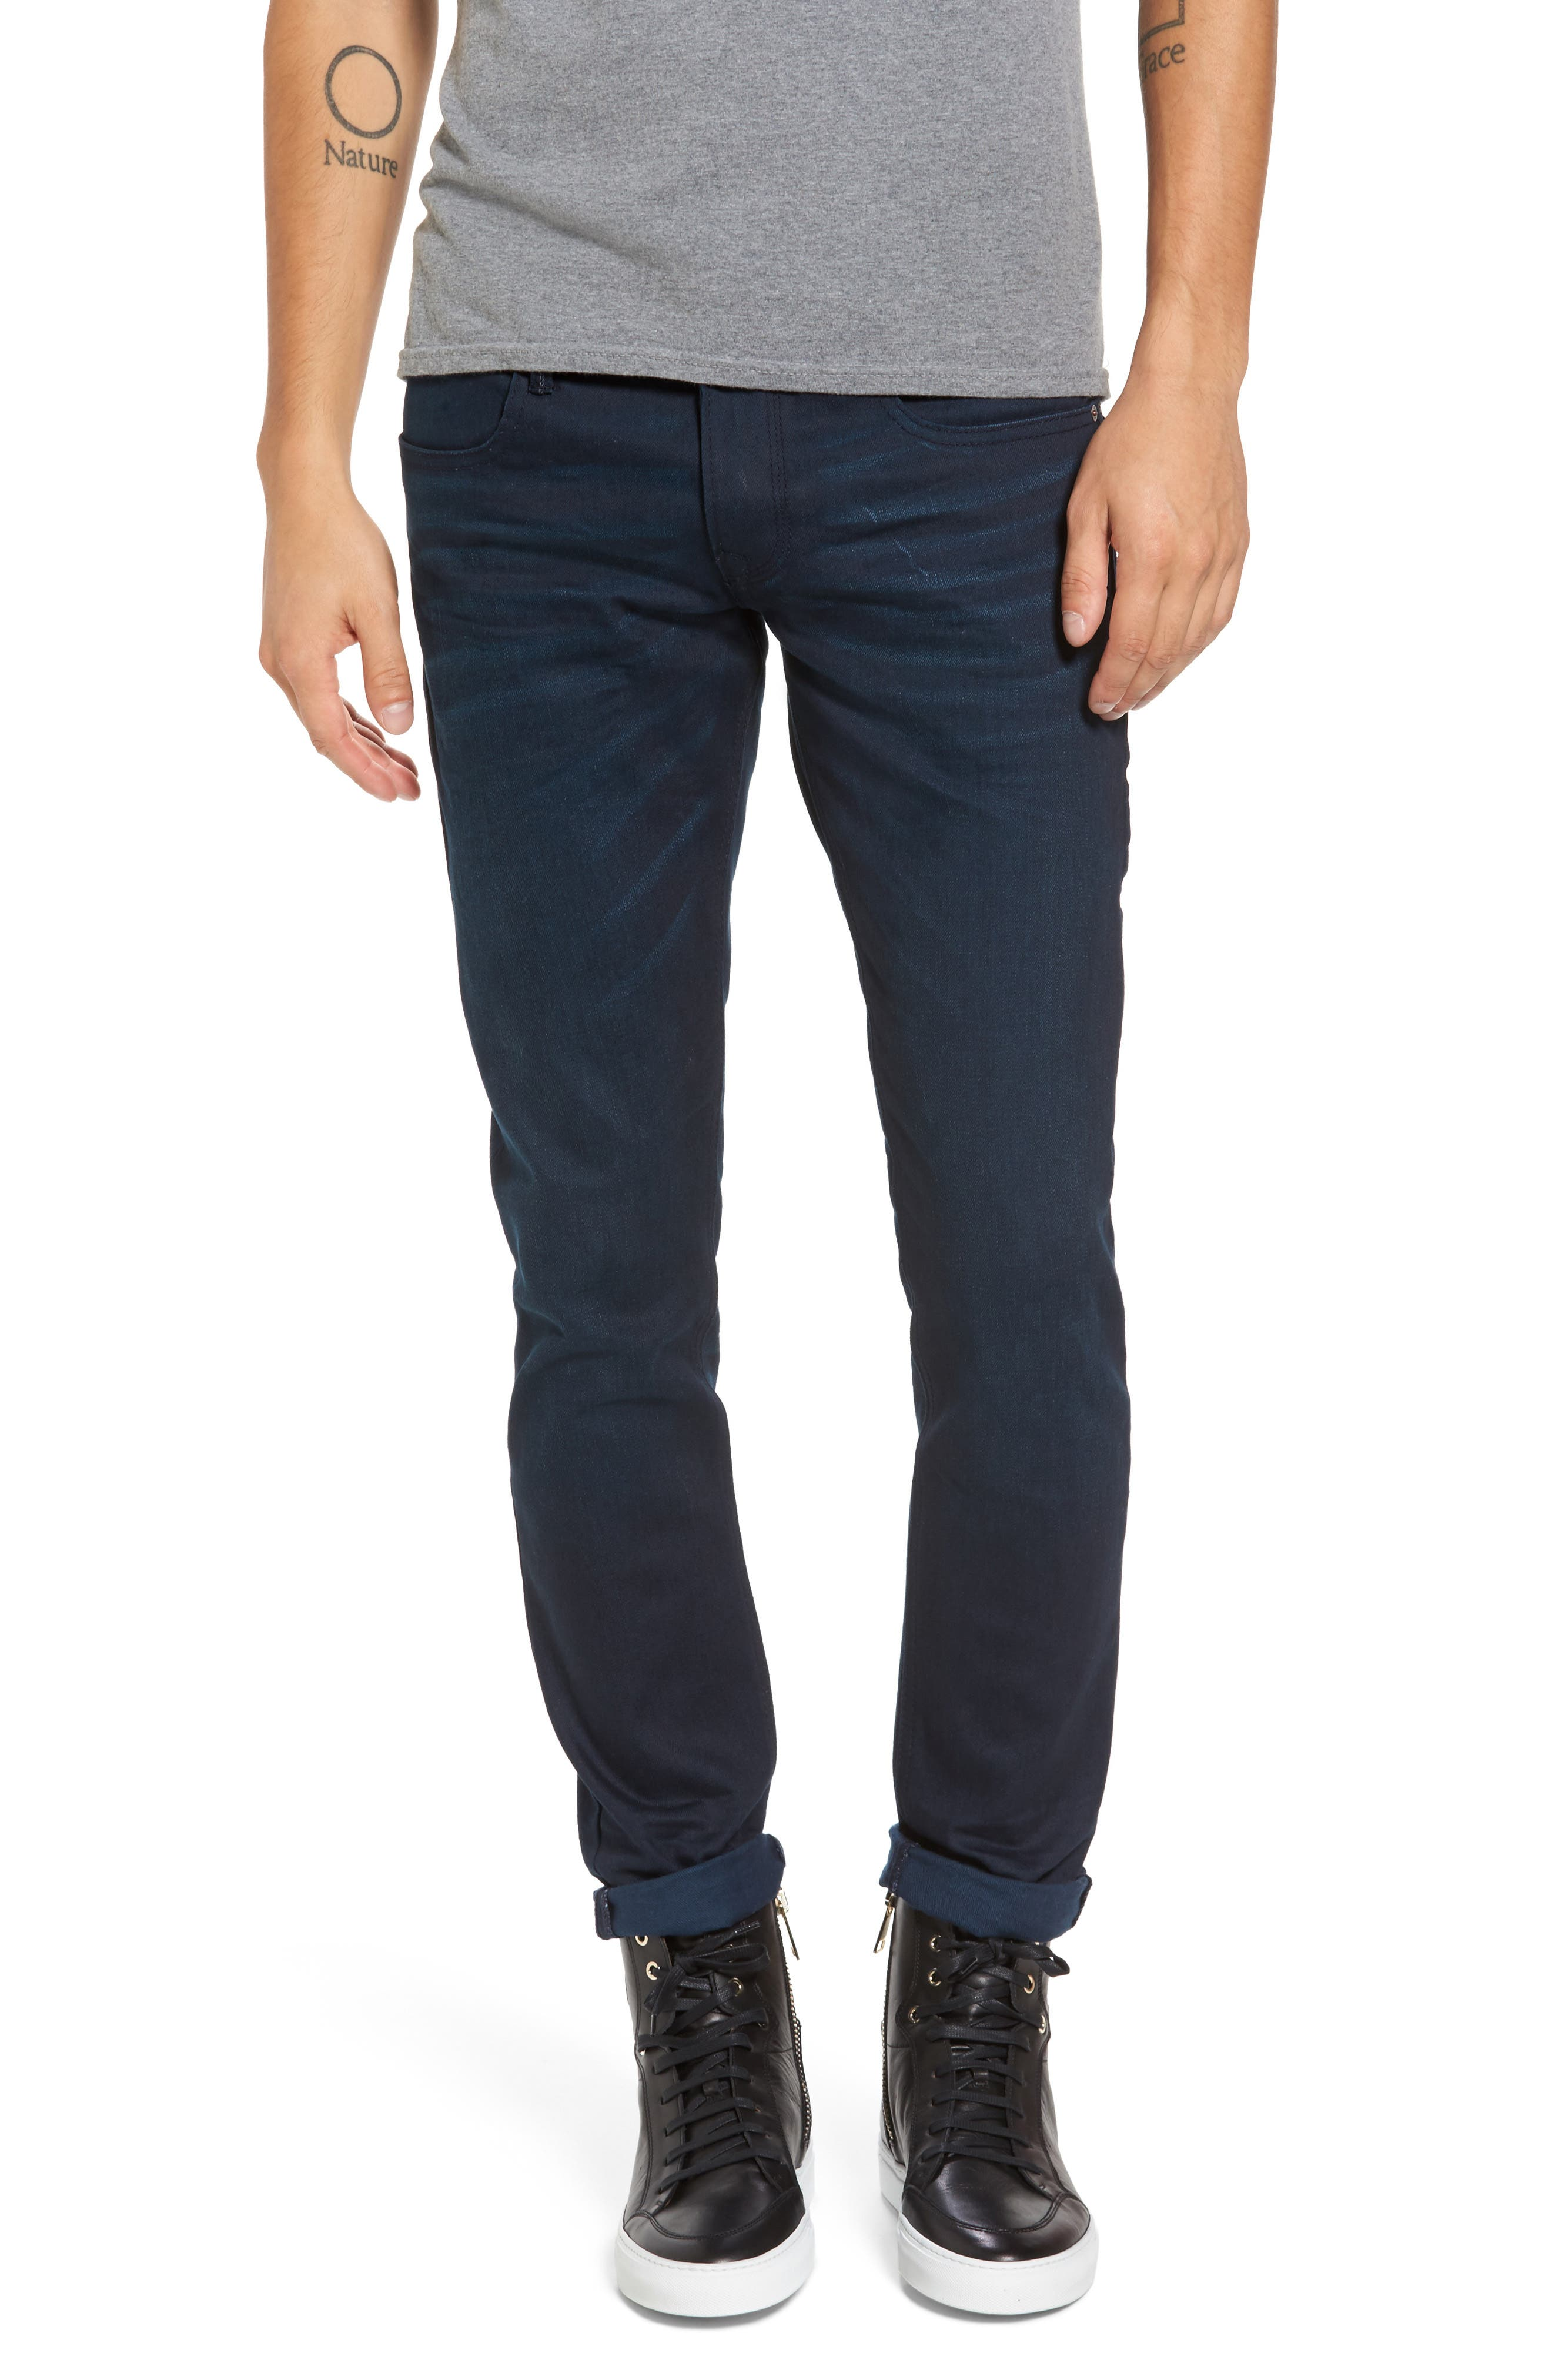 Scotch & Soda Tye Slim Fit Jeans (Cool & Dark)